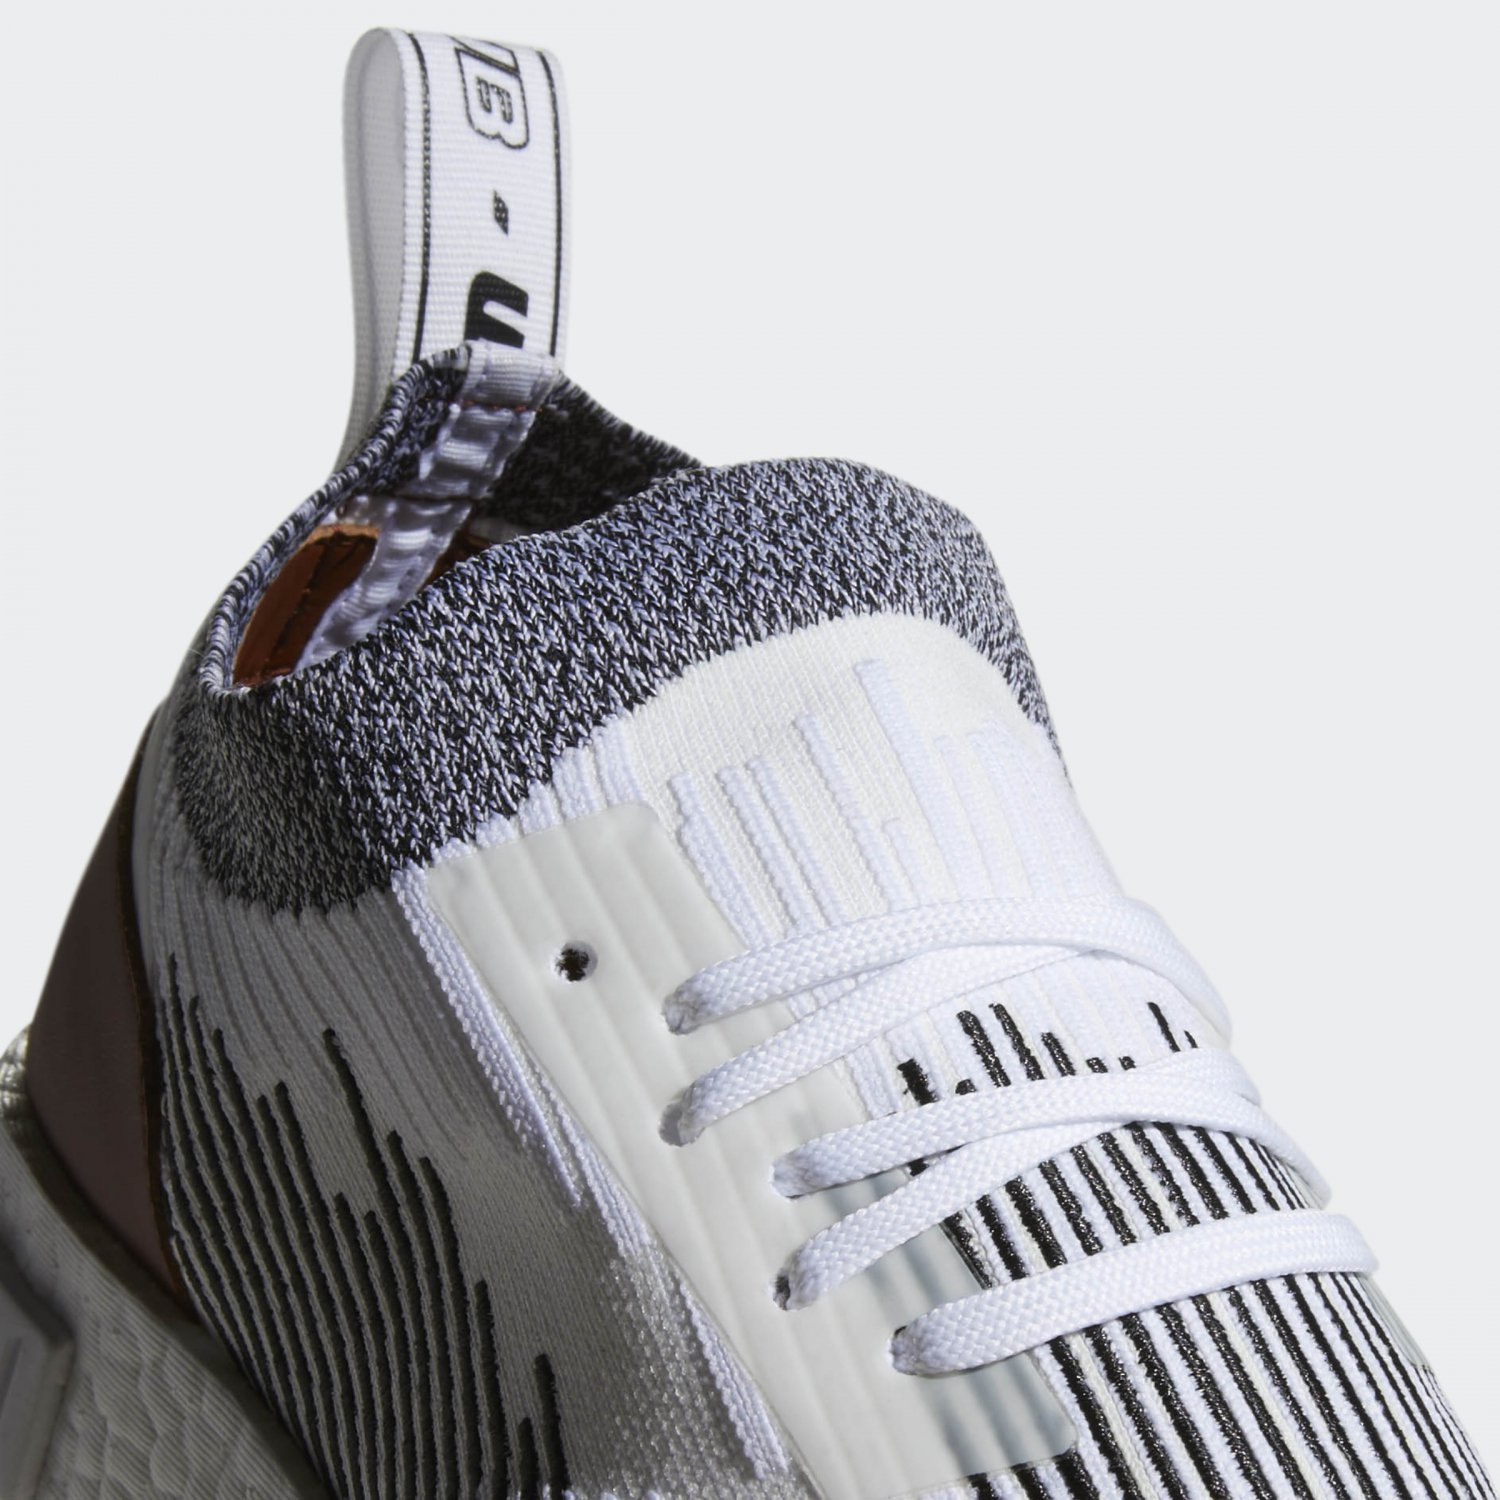 adidas-nmd-racer-the-whitaker-car-club-ac8233-release-20180609